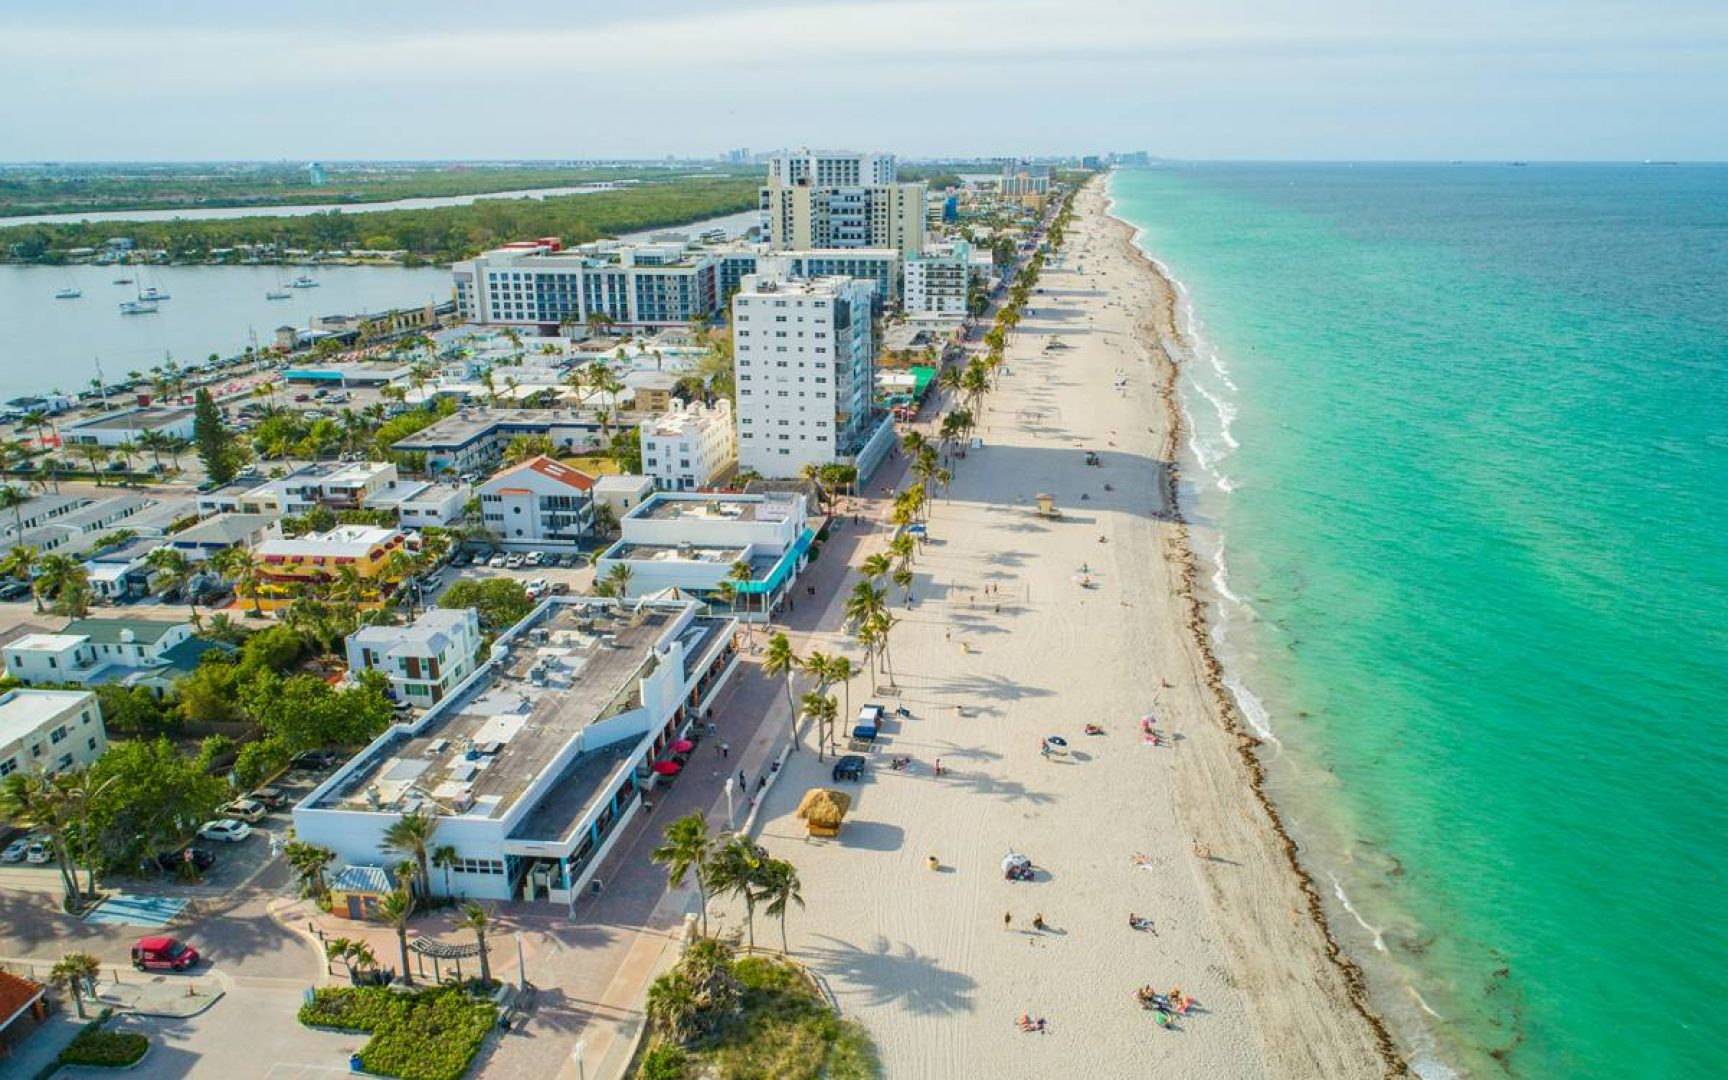 Aerial drone image of hollywood beach and boardwalk